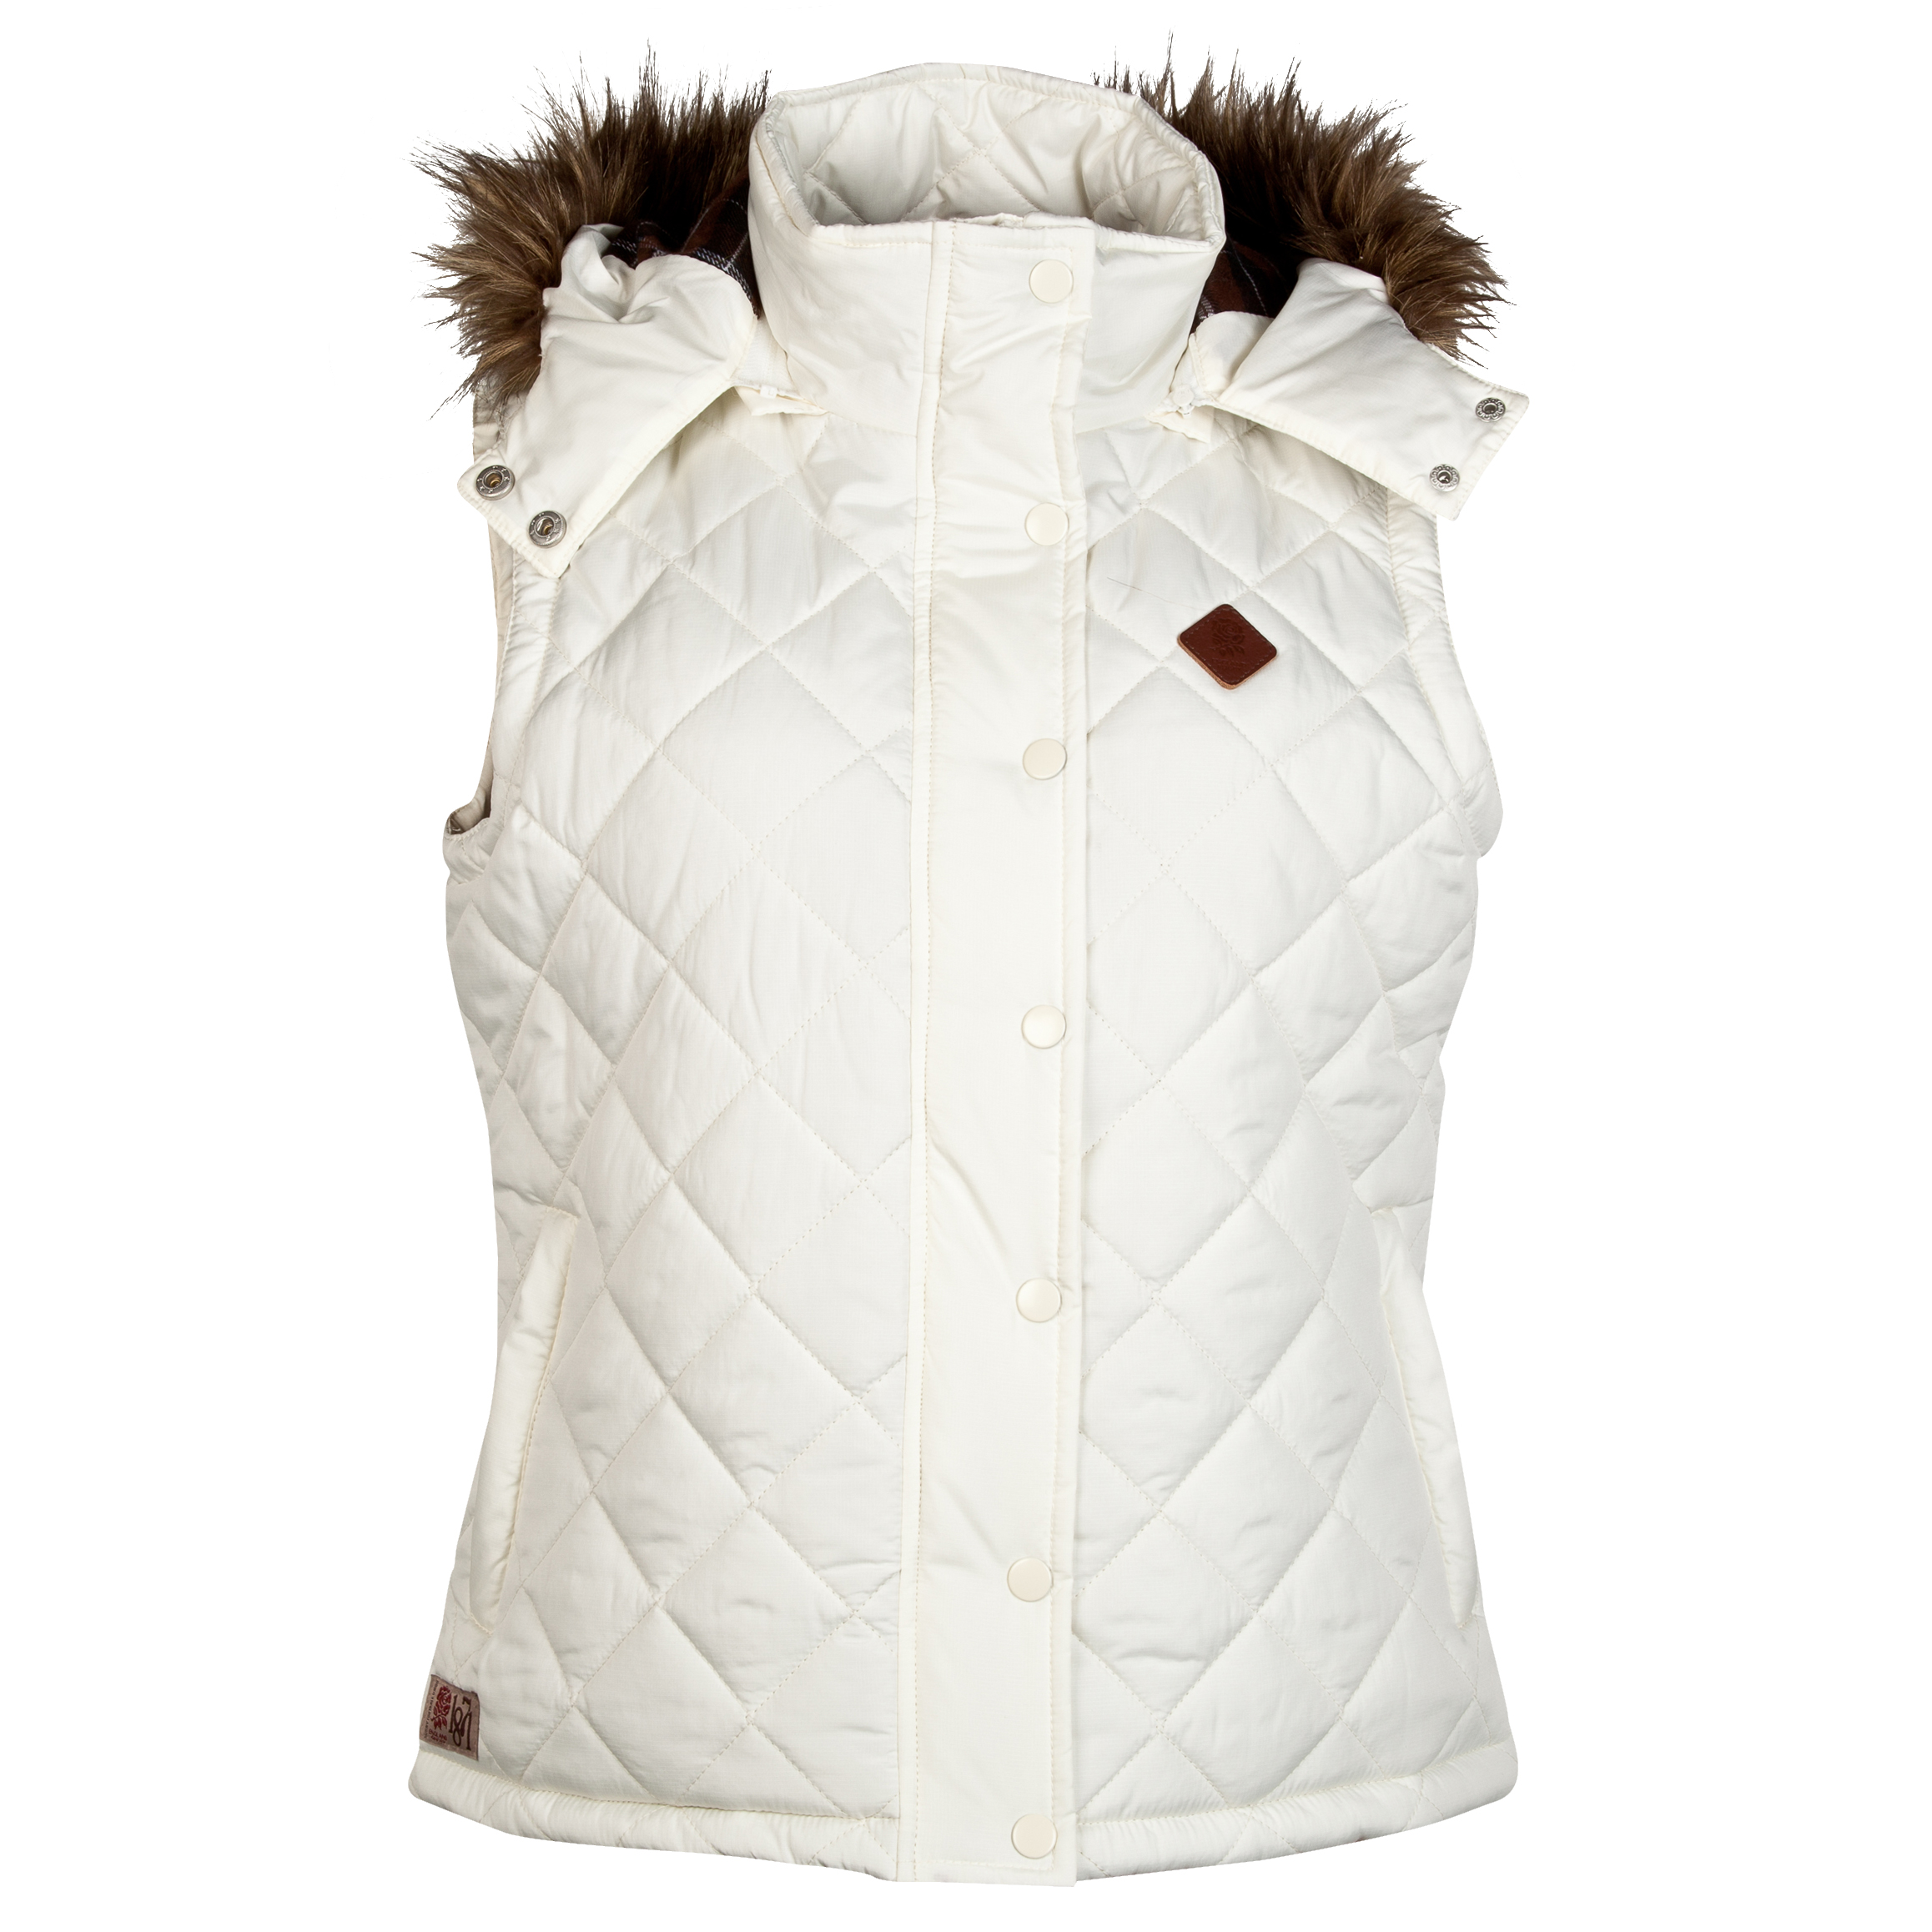 England Rugby Authentics Collection Gilet - Womens Cream